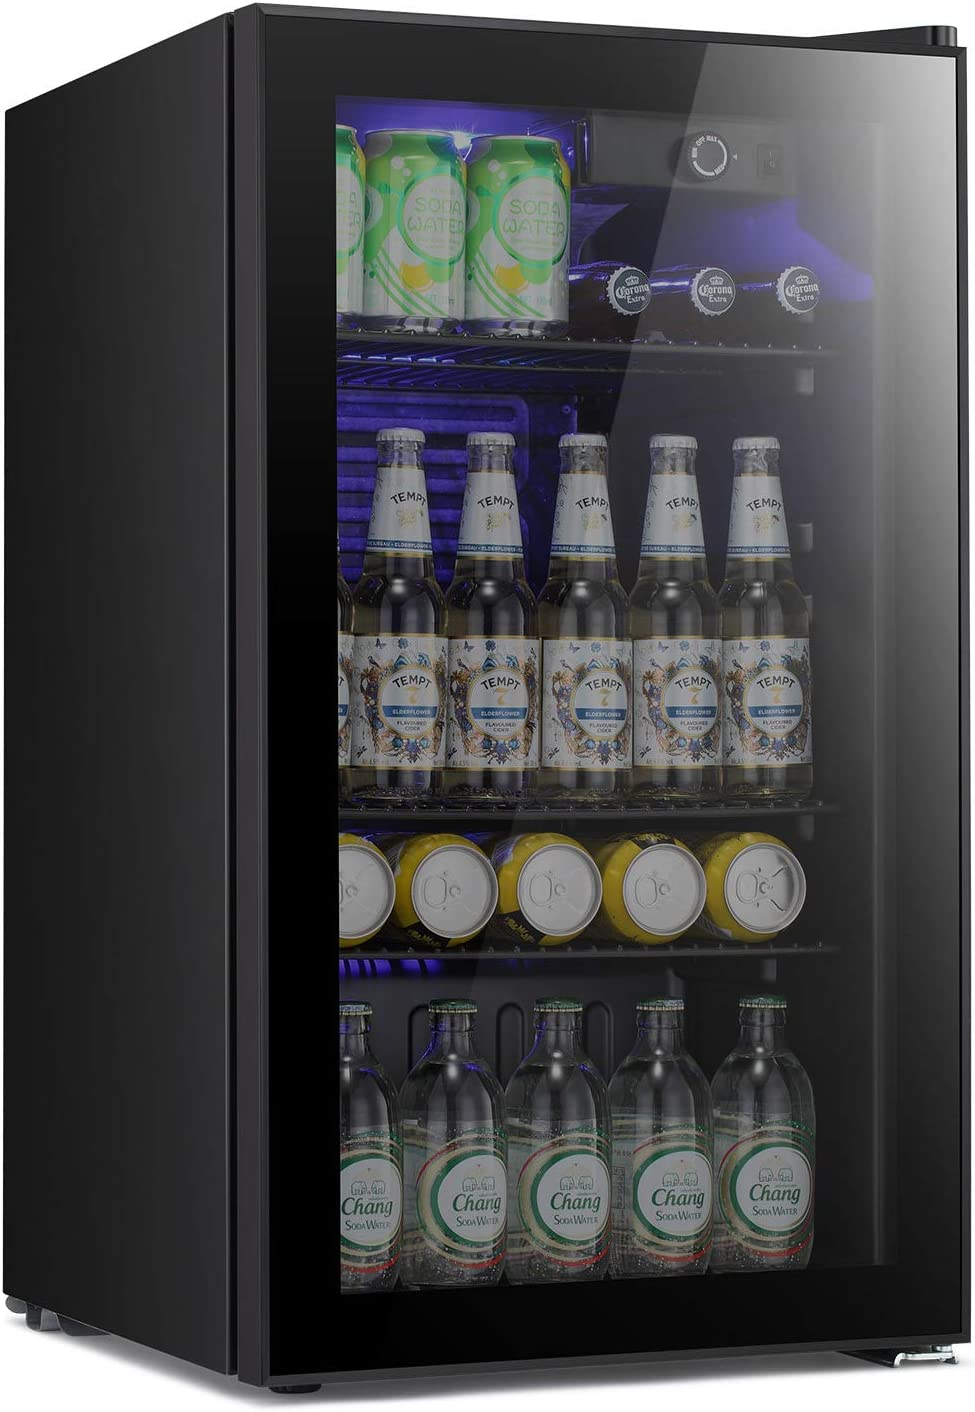 Antarctic Star Beverage Refrigerator -120 Can Mini Fridge for Soda Beer or wine,Small Drink Dispenser, For Office or Bar with Adjustable Removable Shelves,Convertible door ,3.2 Cu. Ft.